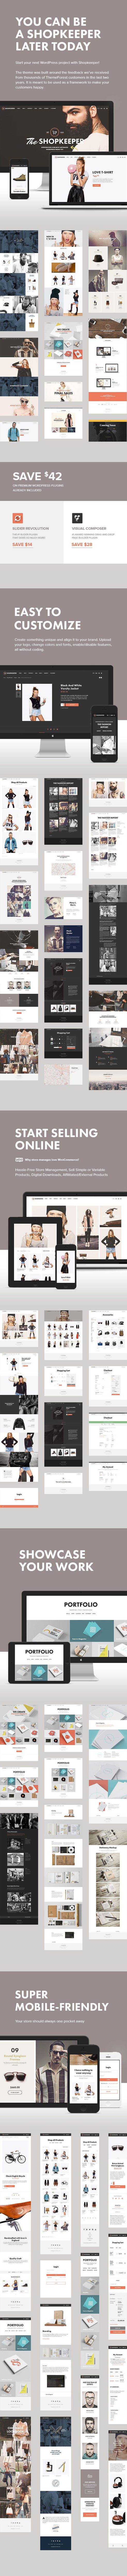 Shopkeeper is a fully responsive WordPress theme built with the eCommerce functionality in mind. This is the most advanced and flexible theme we've built so far. It is meant to be used as a framework for making customers happy. The theme was built around the feedback we've received from thousands of ThemeForest customers in the last two years. http://themeforest.net/item/shopkeeper-responsive-wordpress-theme/9553045?ref=creativetouch